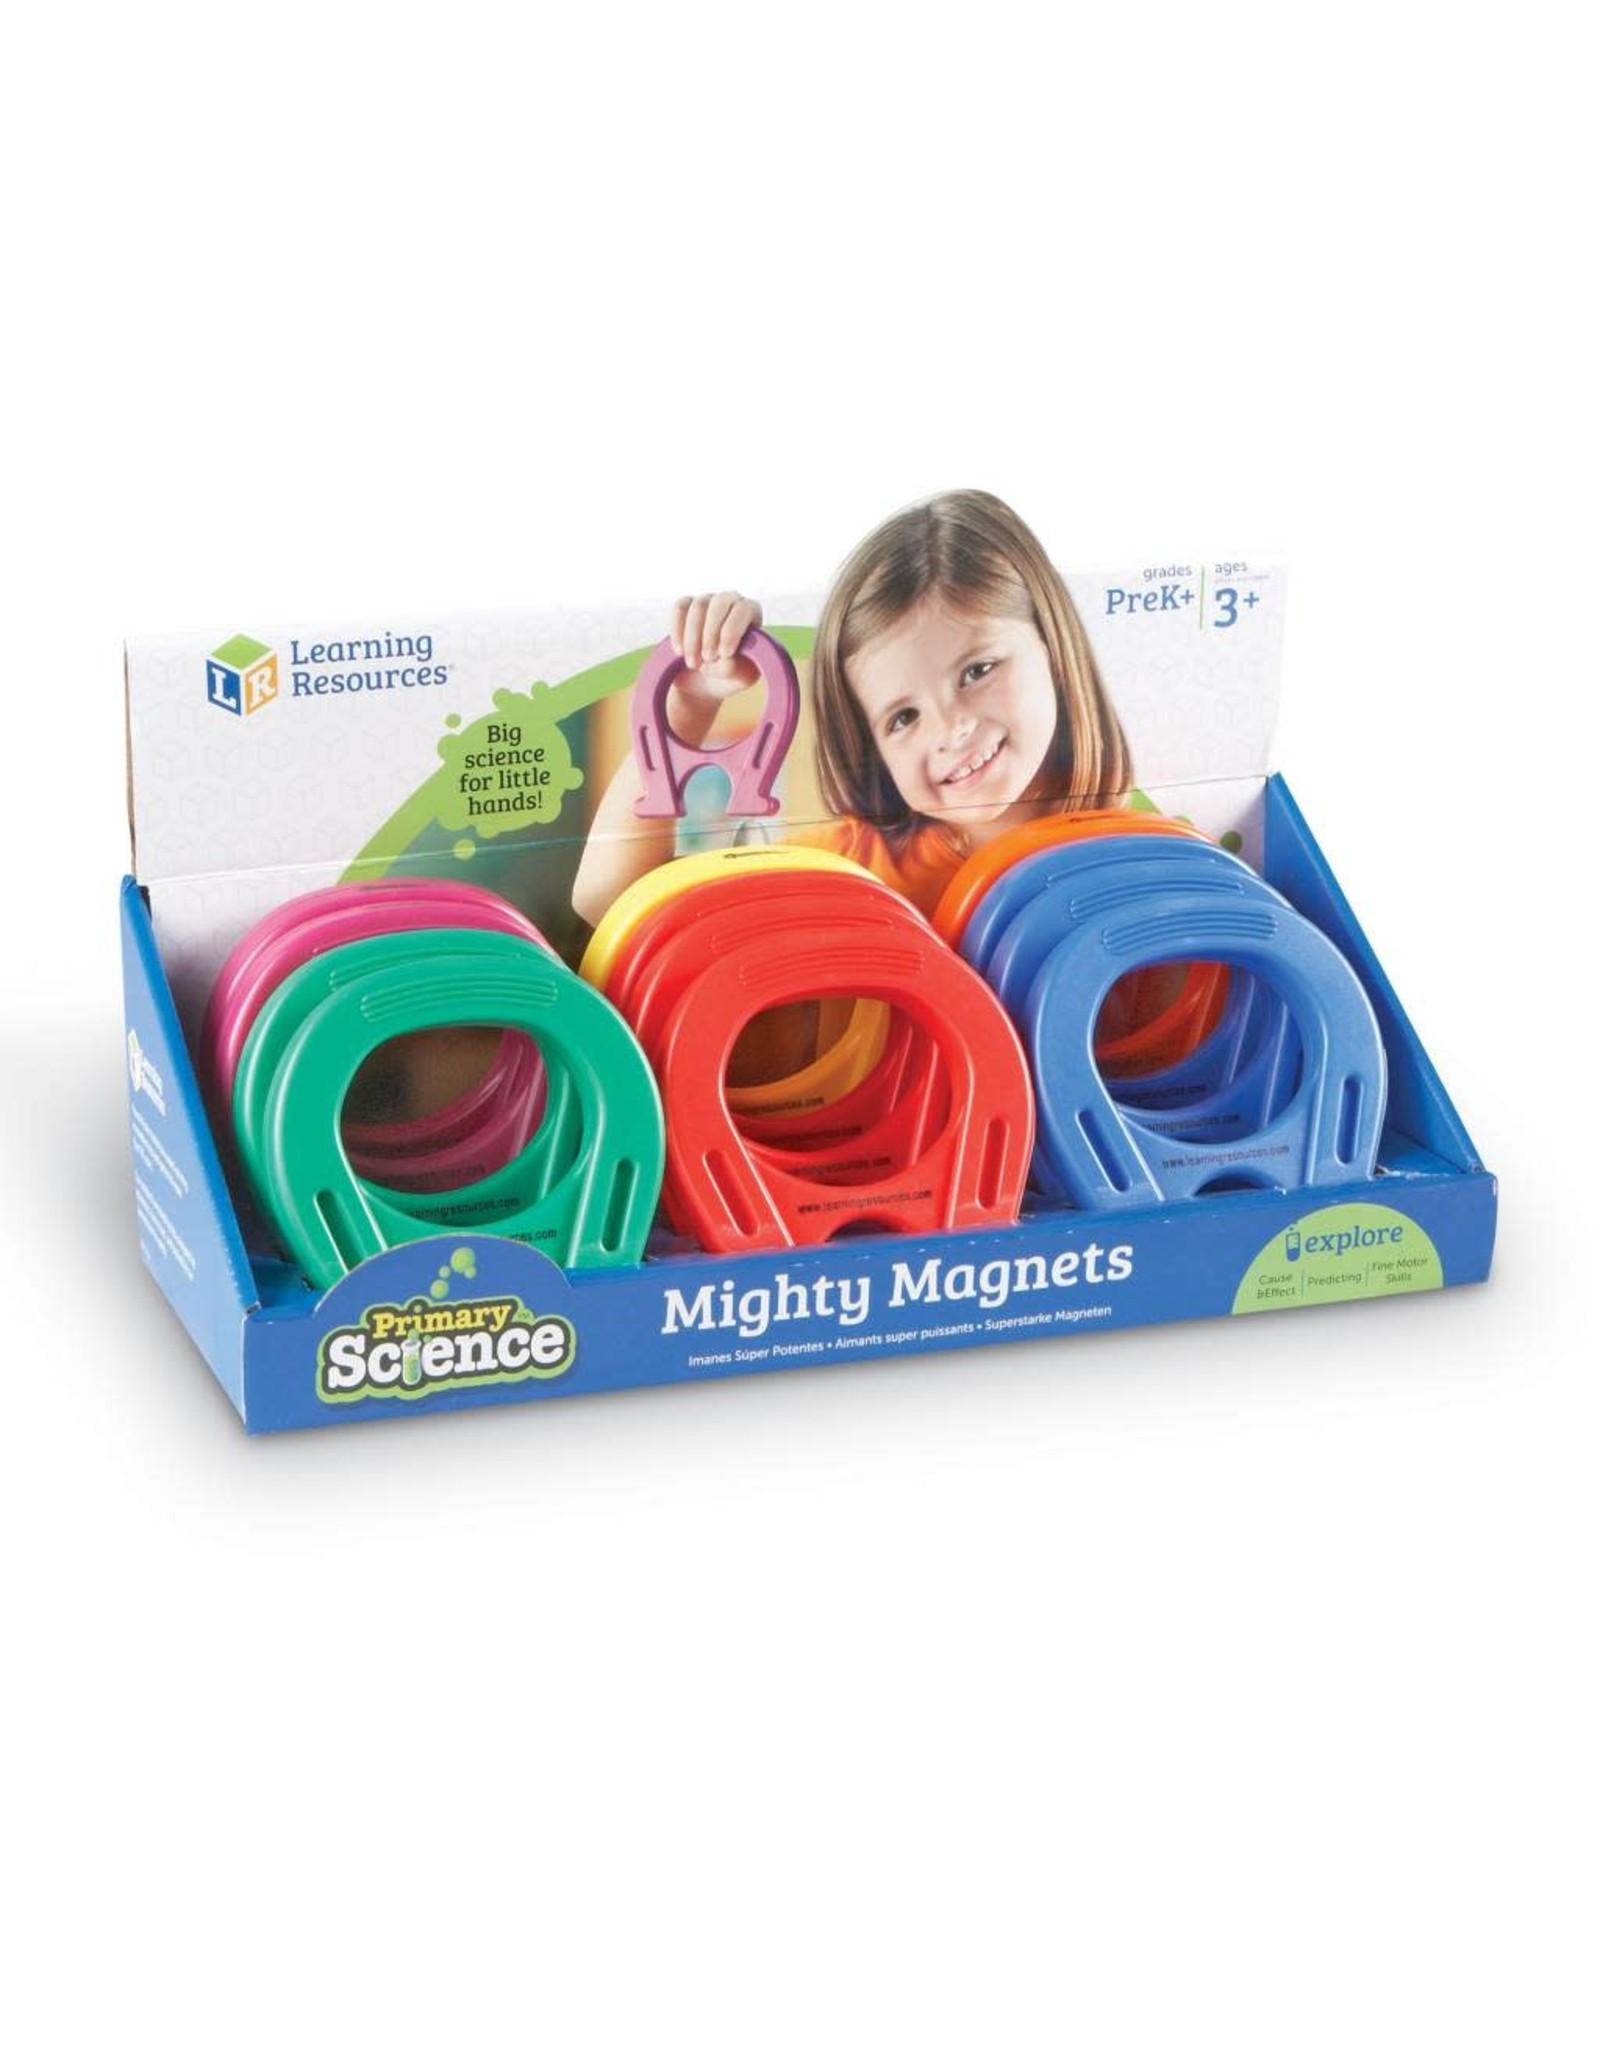 Primary Science Mighty Magnets